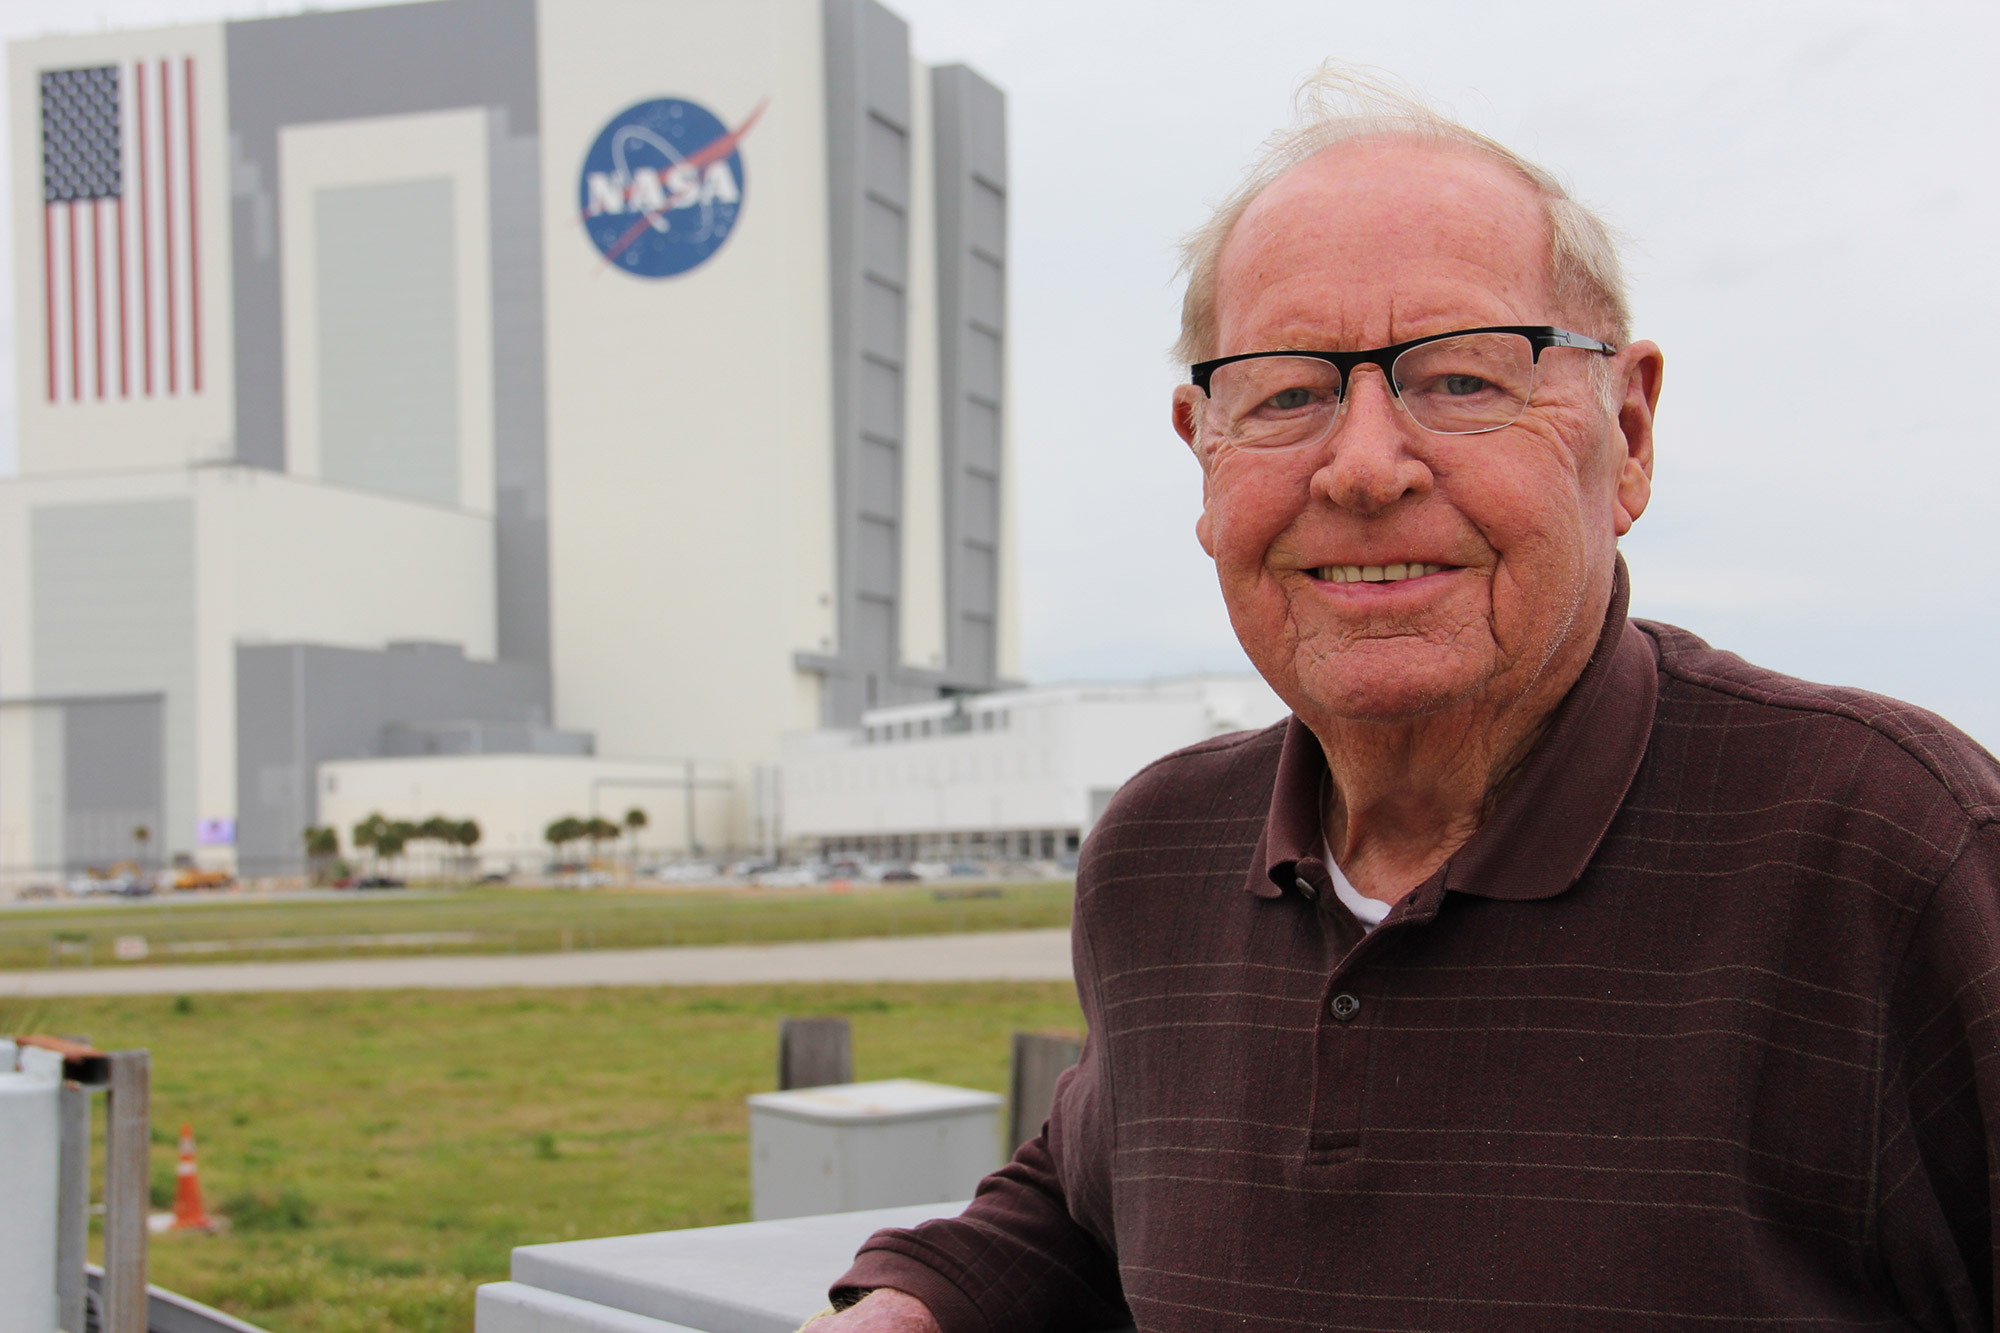 Jack King stands outside the KSC Press Center with the VAB in the background. Credit: Nicole Solomon